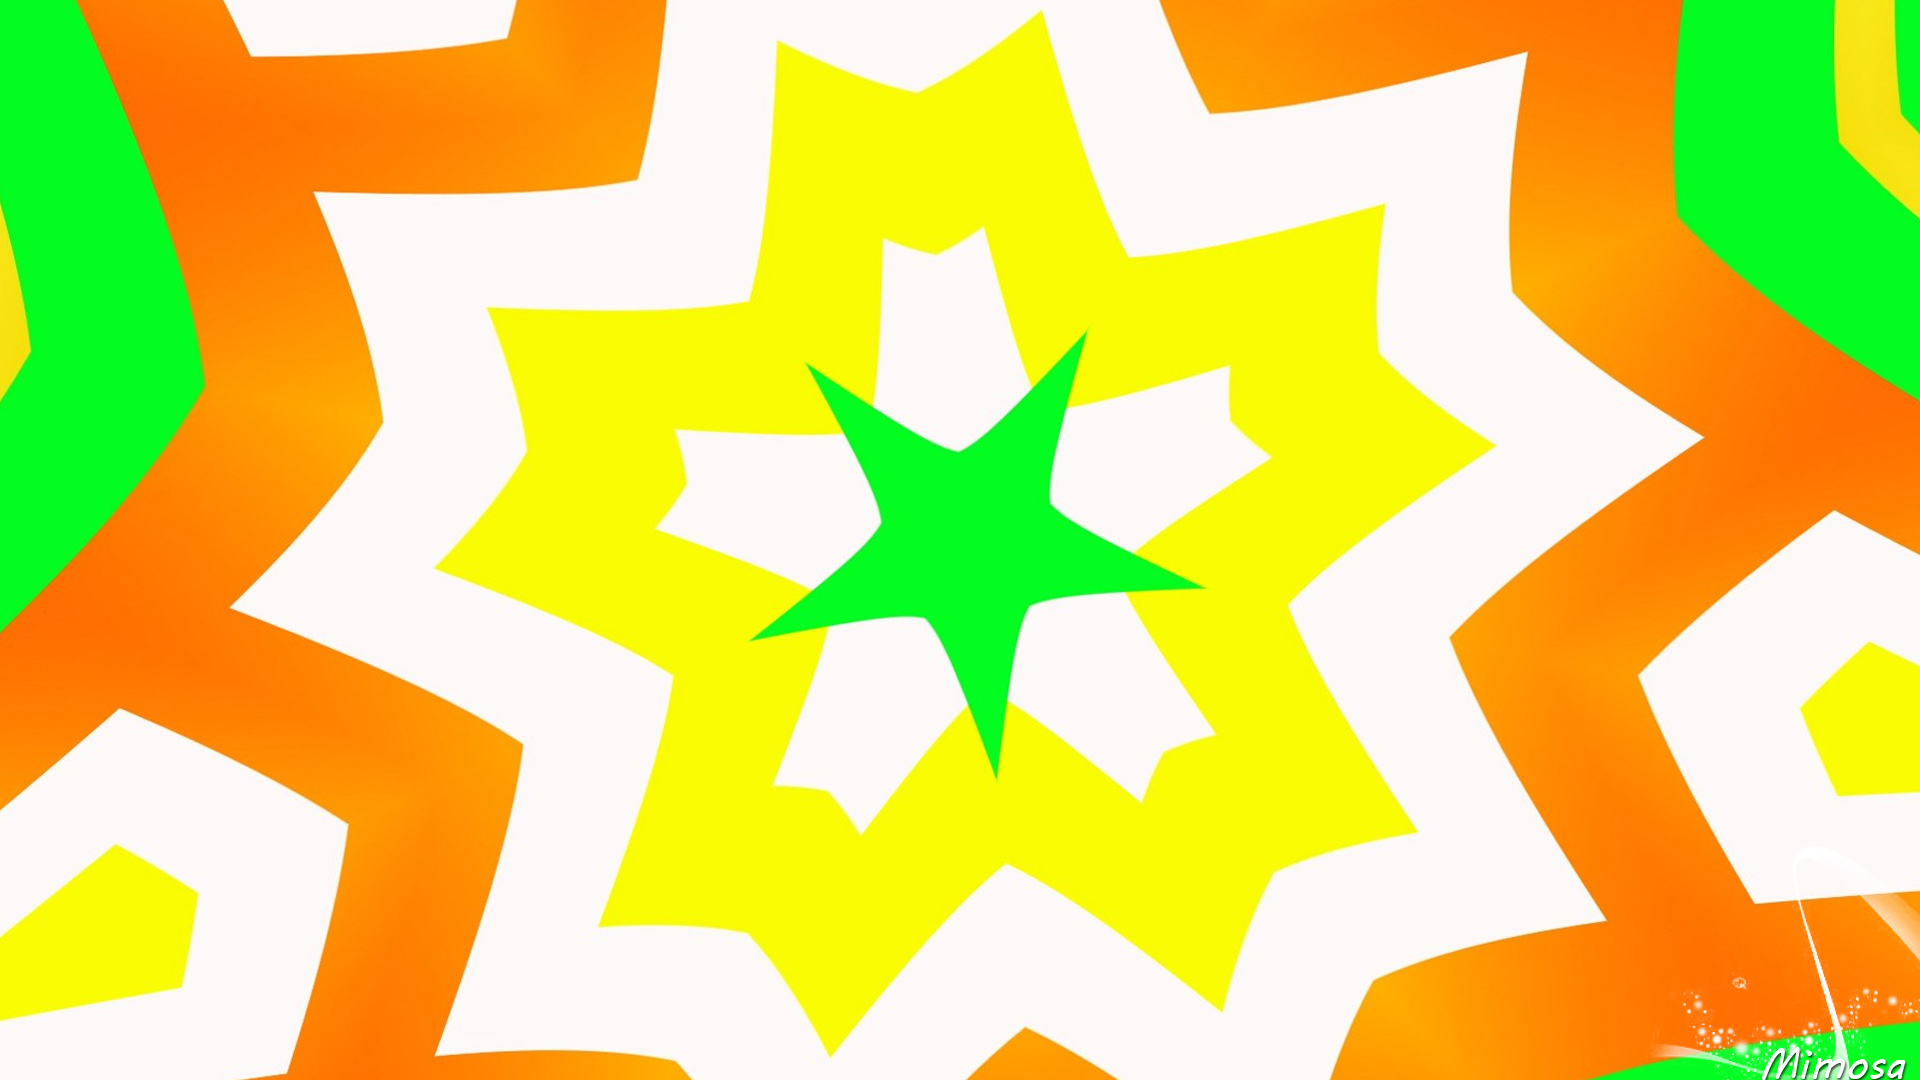 Abstract Artistic Colorful Colors Digital Art Geometry Green Kaleidoscope Pattern Shapes Star White  1920x1080